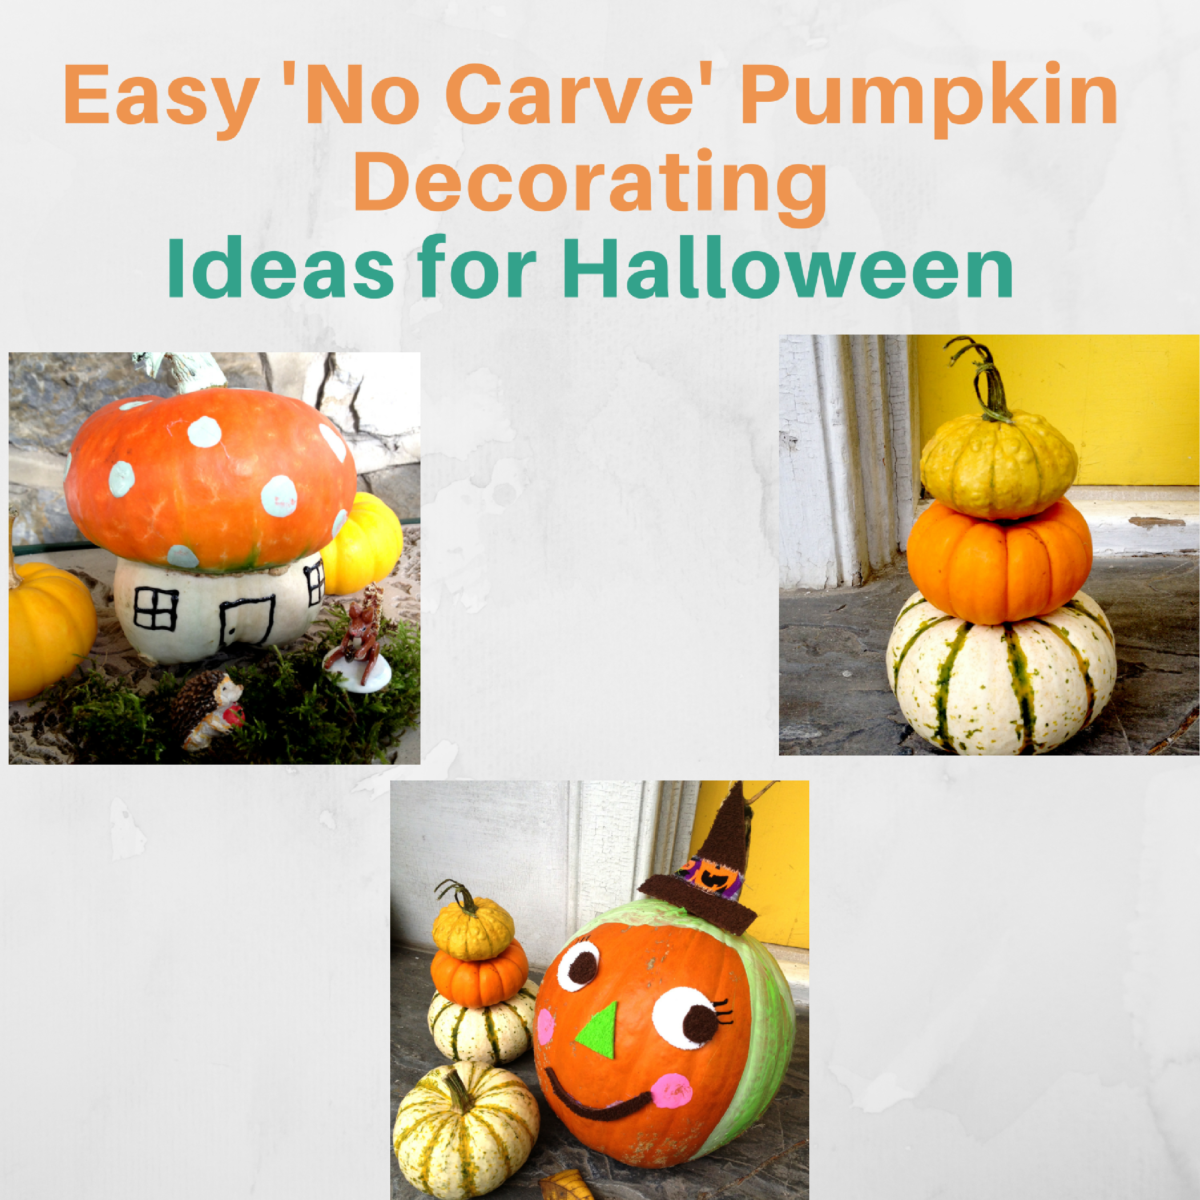 Easy 'No Carve' Pumpkin Decorating Ideas for Halloween